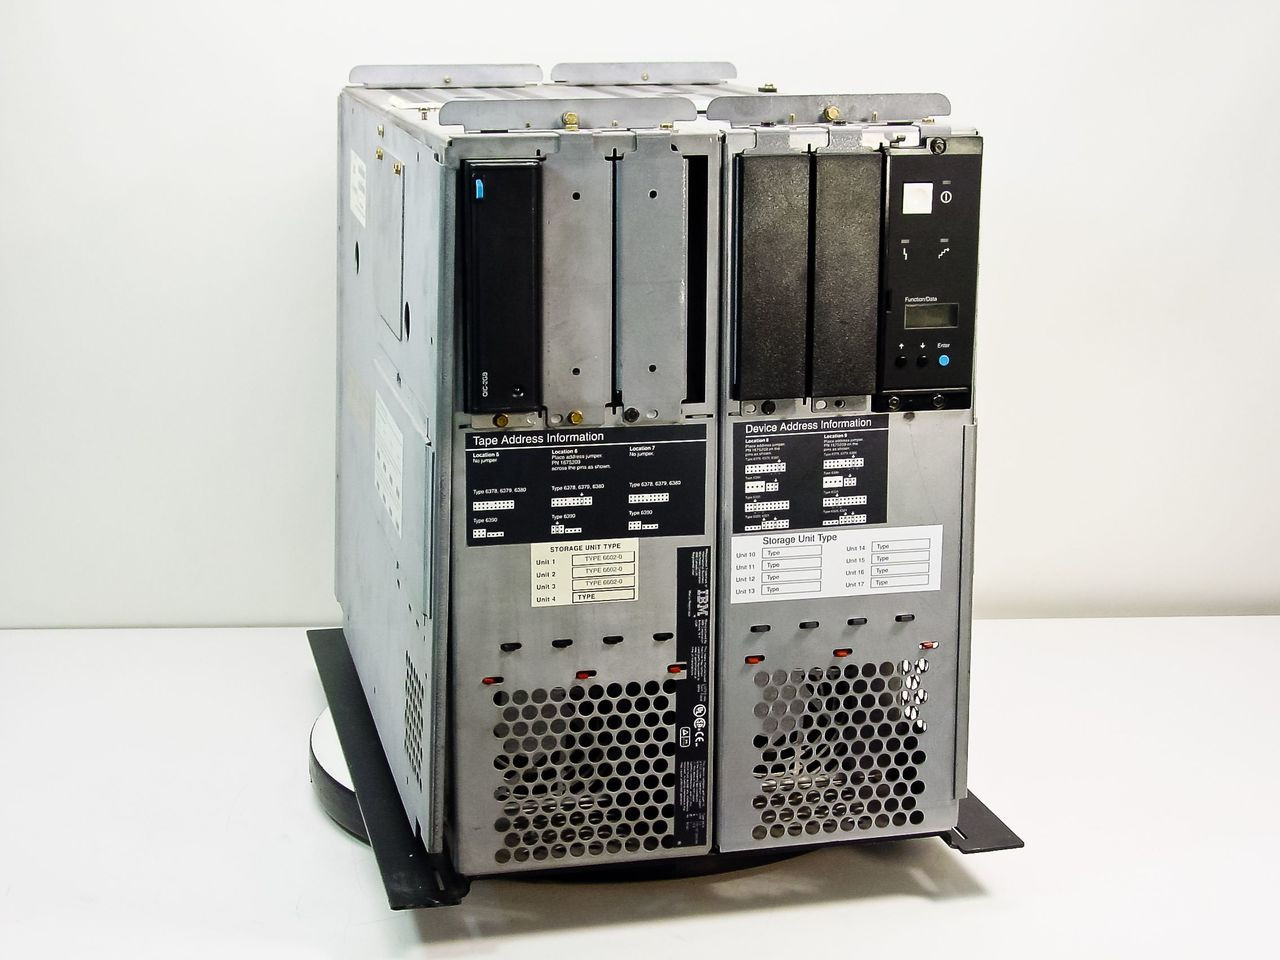 ibm 9404 application system400 as400 server as is - As400 Computer System